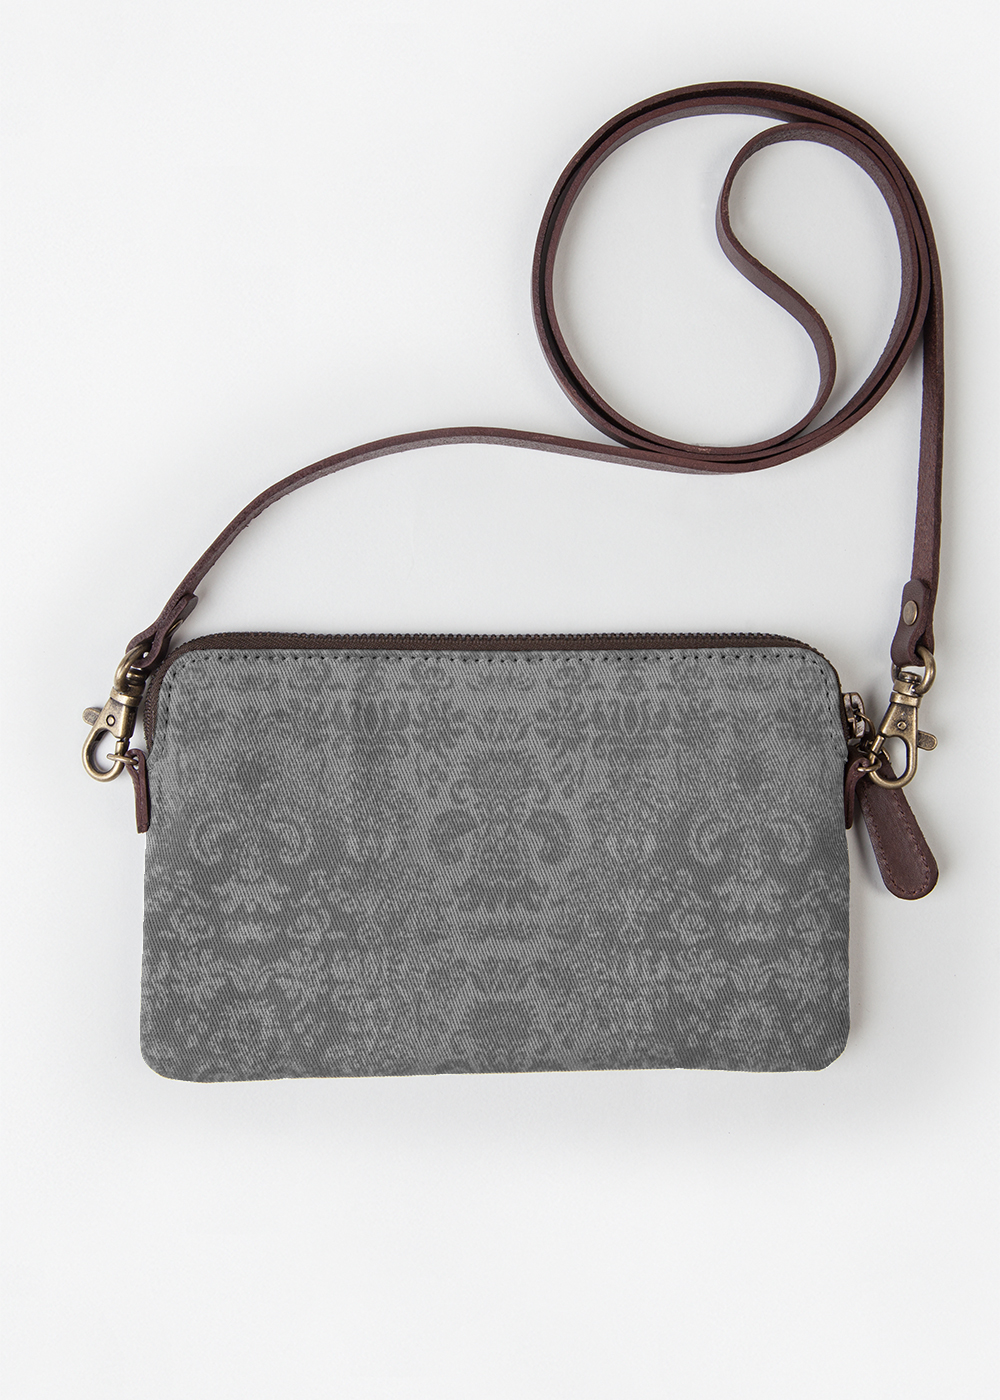 VIDA Statement Clutch - Brooklyn Pointe Purse by VIDA